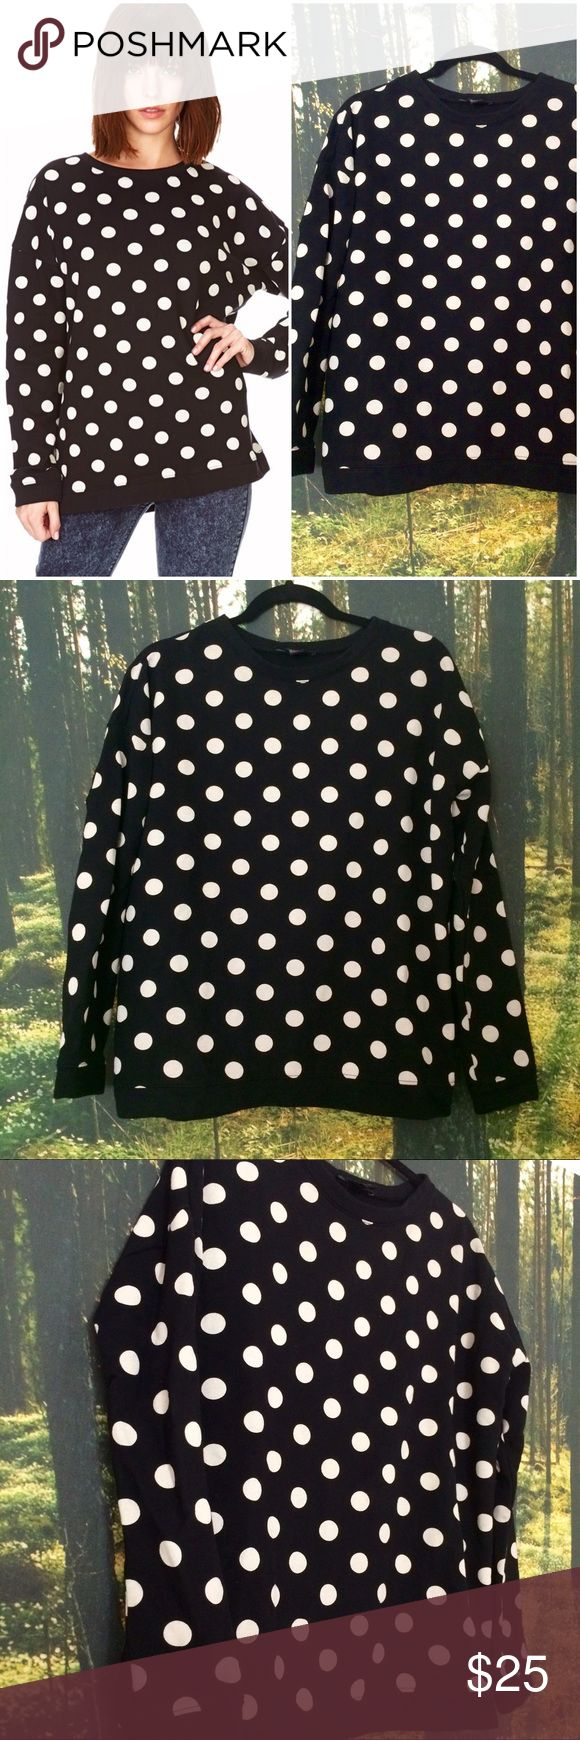 Polka Dot Sweatshirt Connect the dots! Crewneck polka-dot sweatshirt in like-new condition. Size S, will fit anyone between a 2-8. Forever 21 Tops Sweatshirts & Hoodies